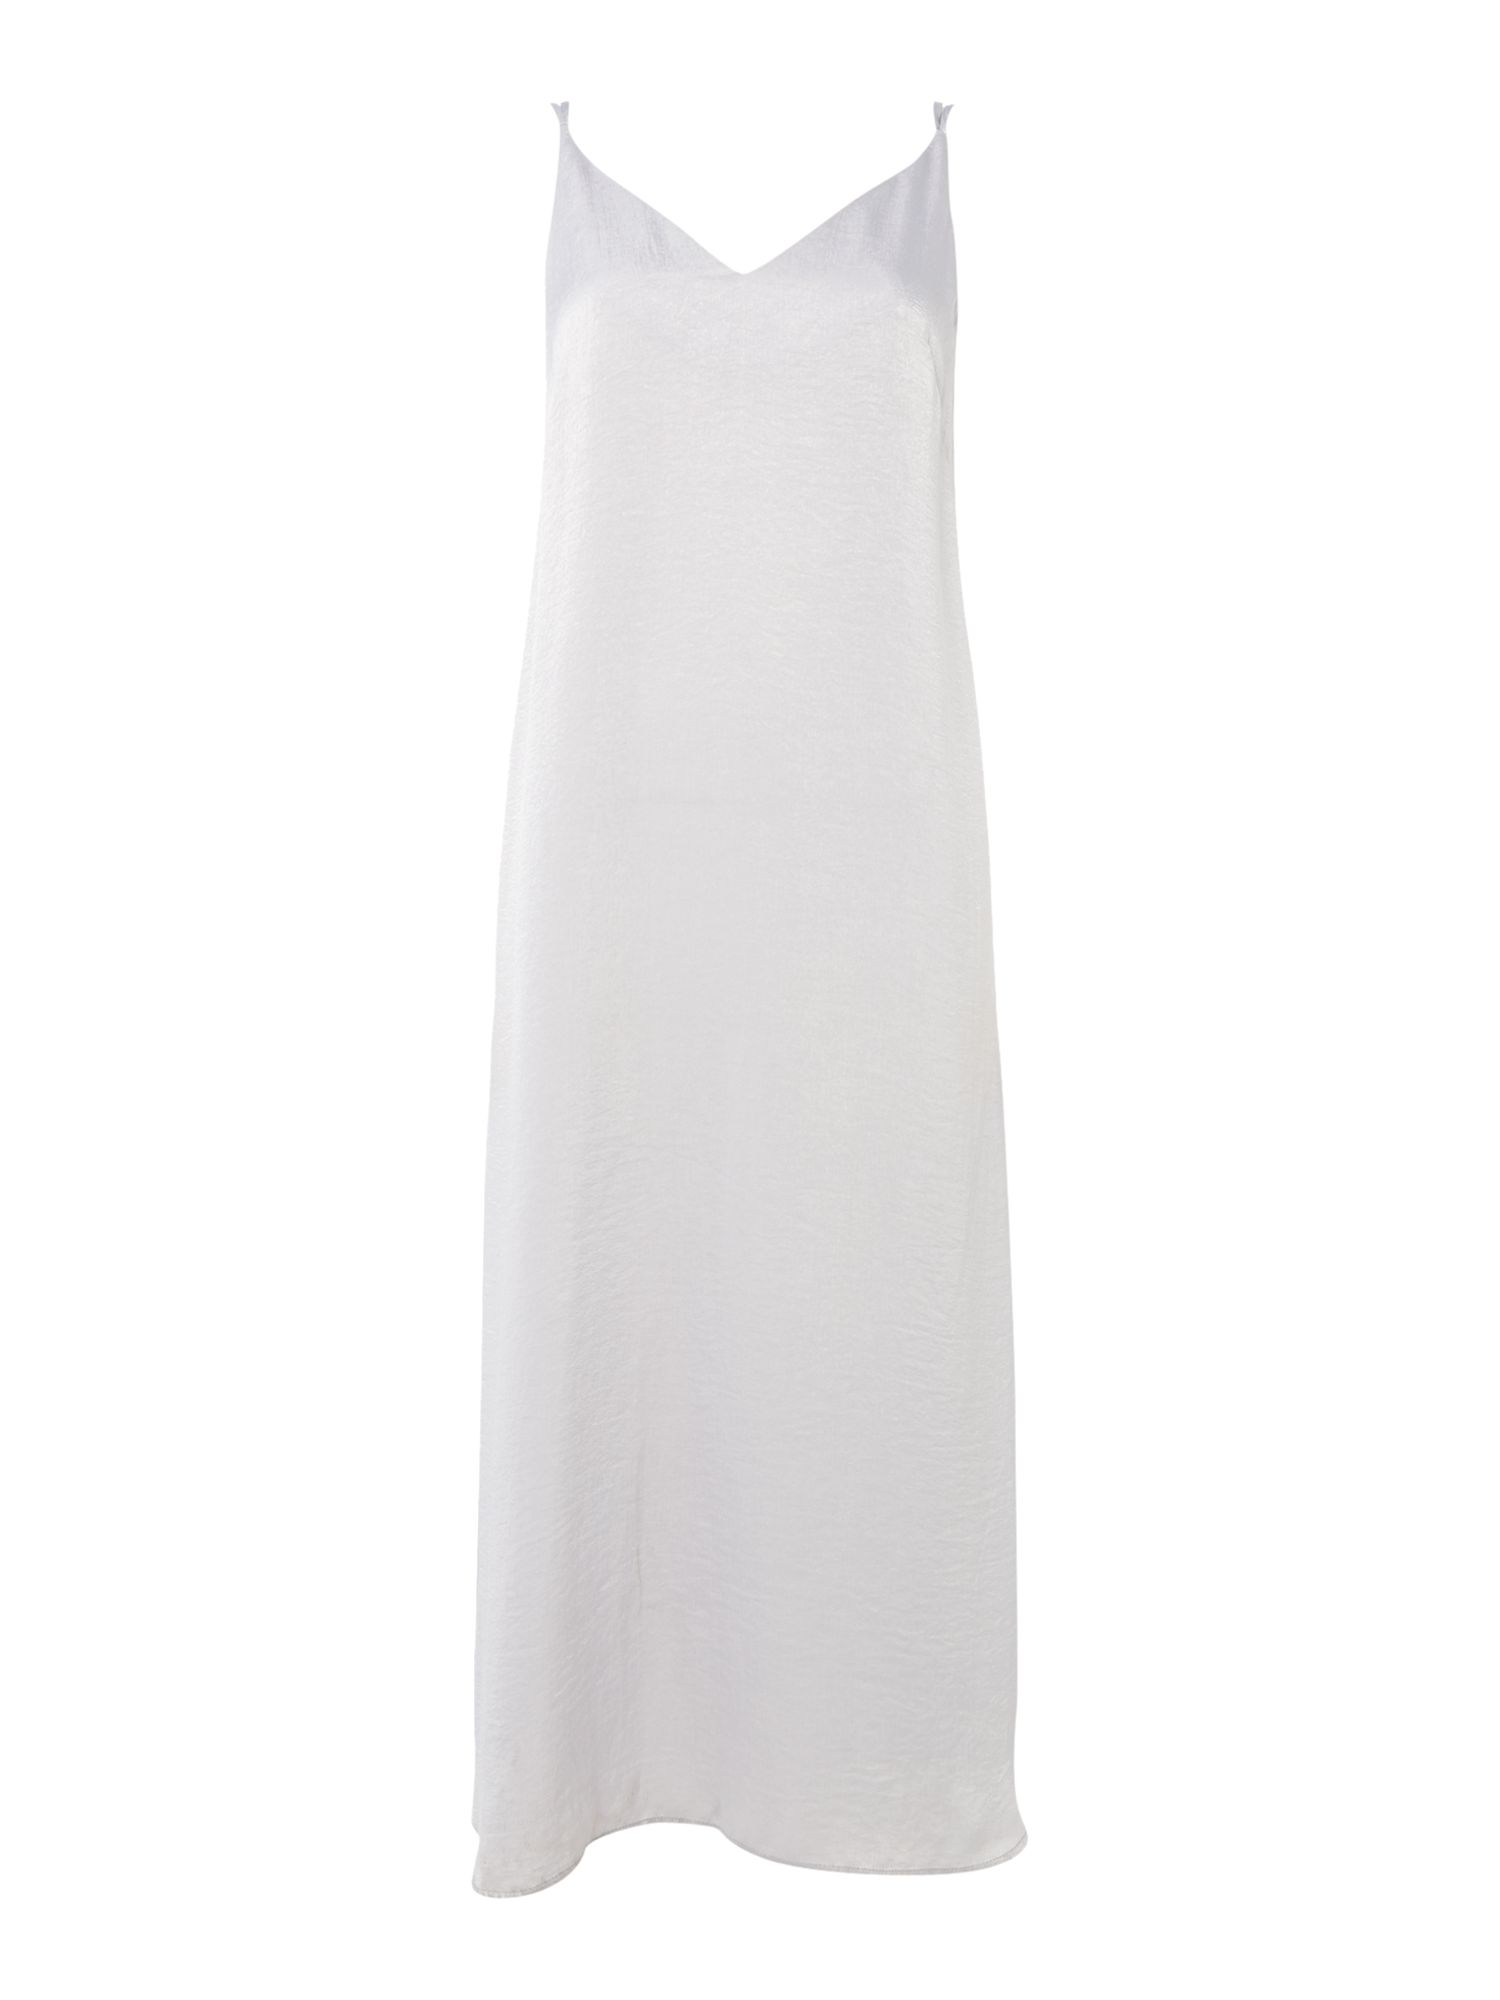 Label Lab Double-Strap Mottled Satin Dress, Silver